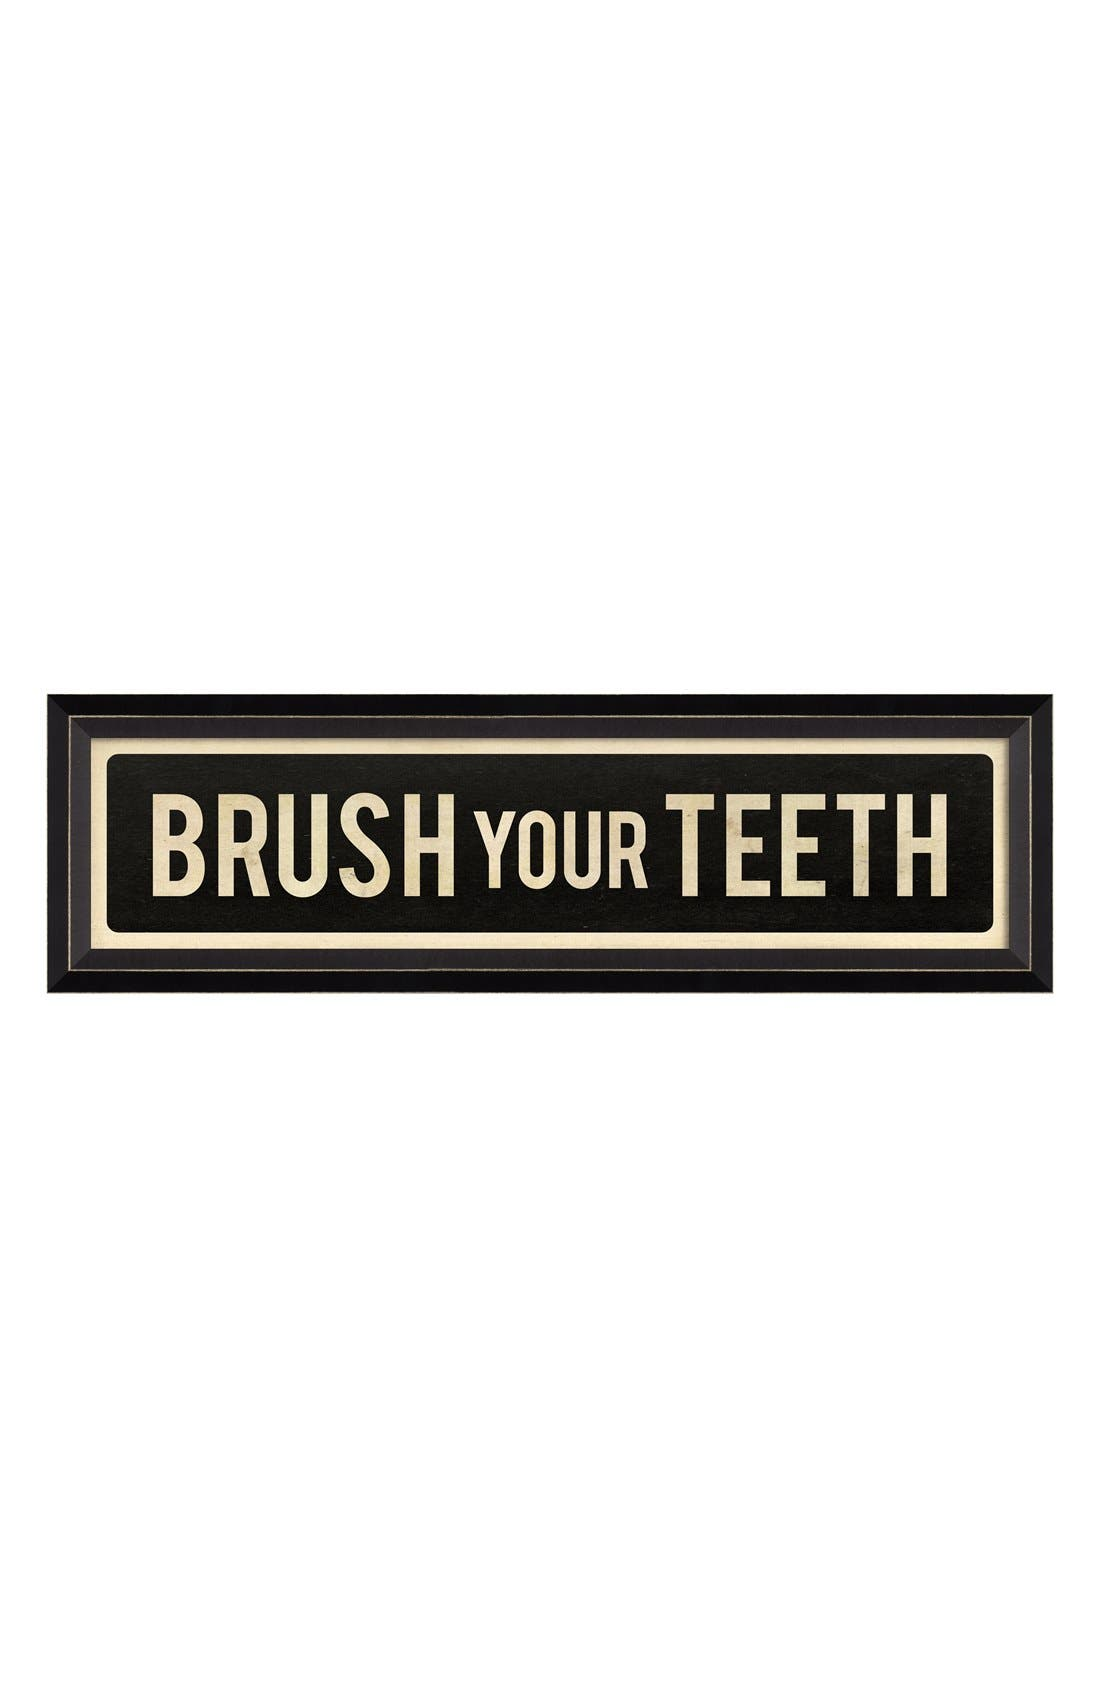 Alternate Image 1 Selected - Spicher and Company 'Brush Your Teeth' Vintage Look Sign Artwork